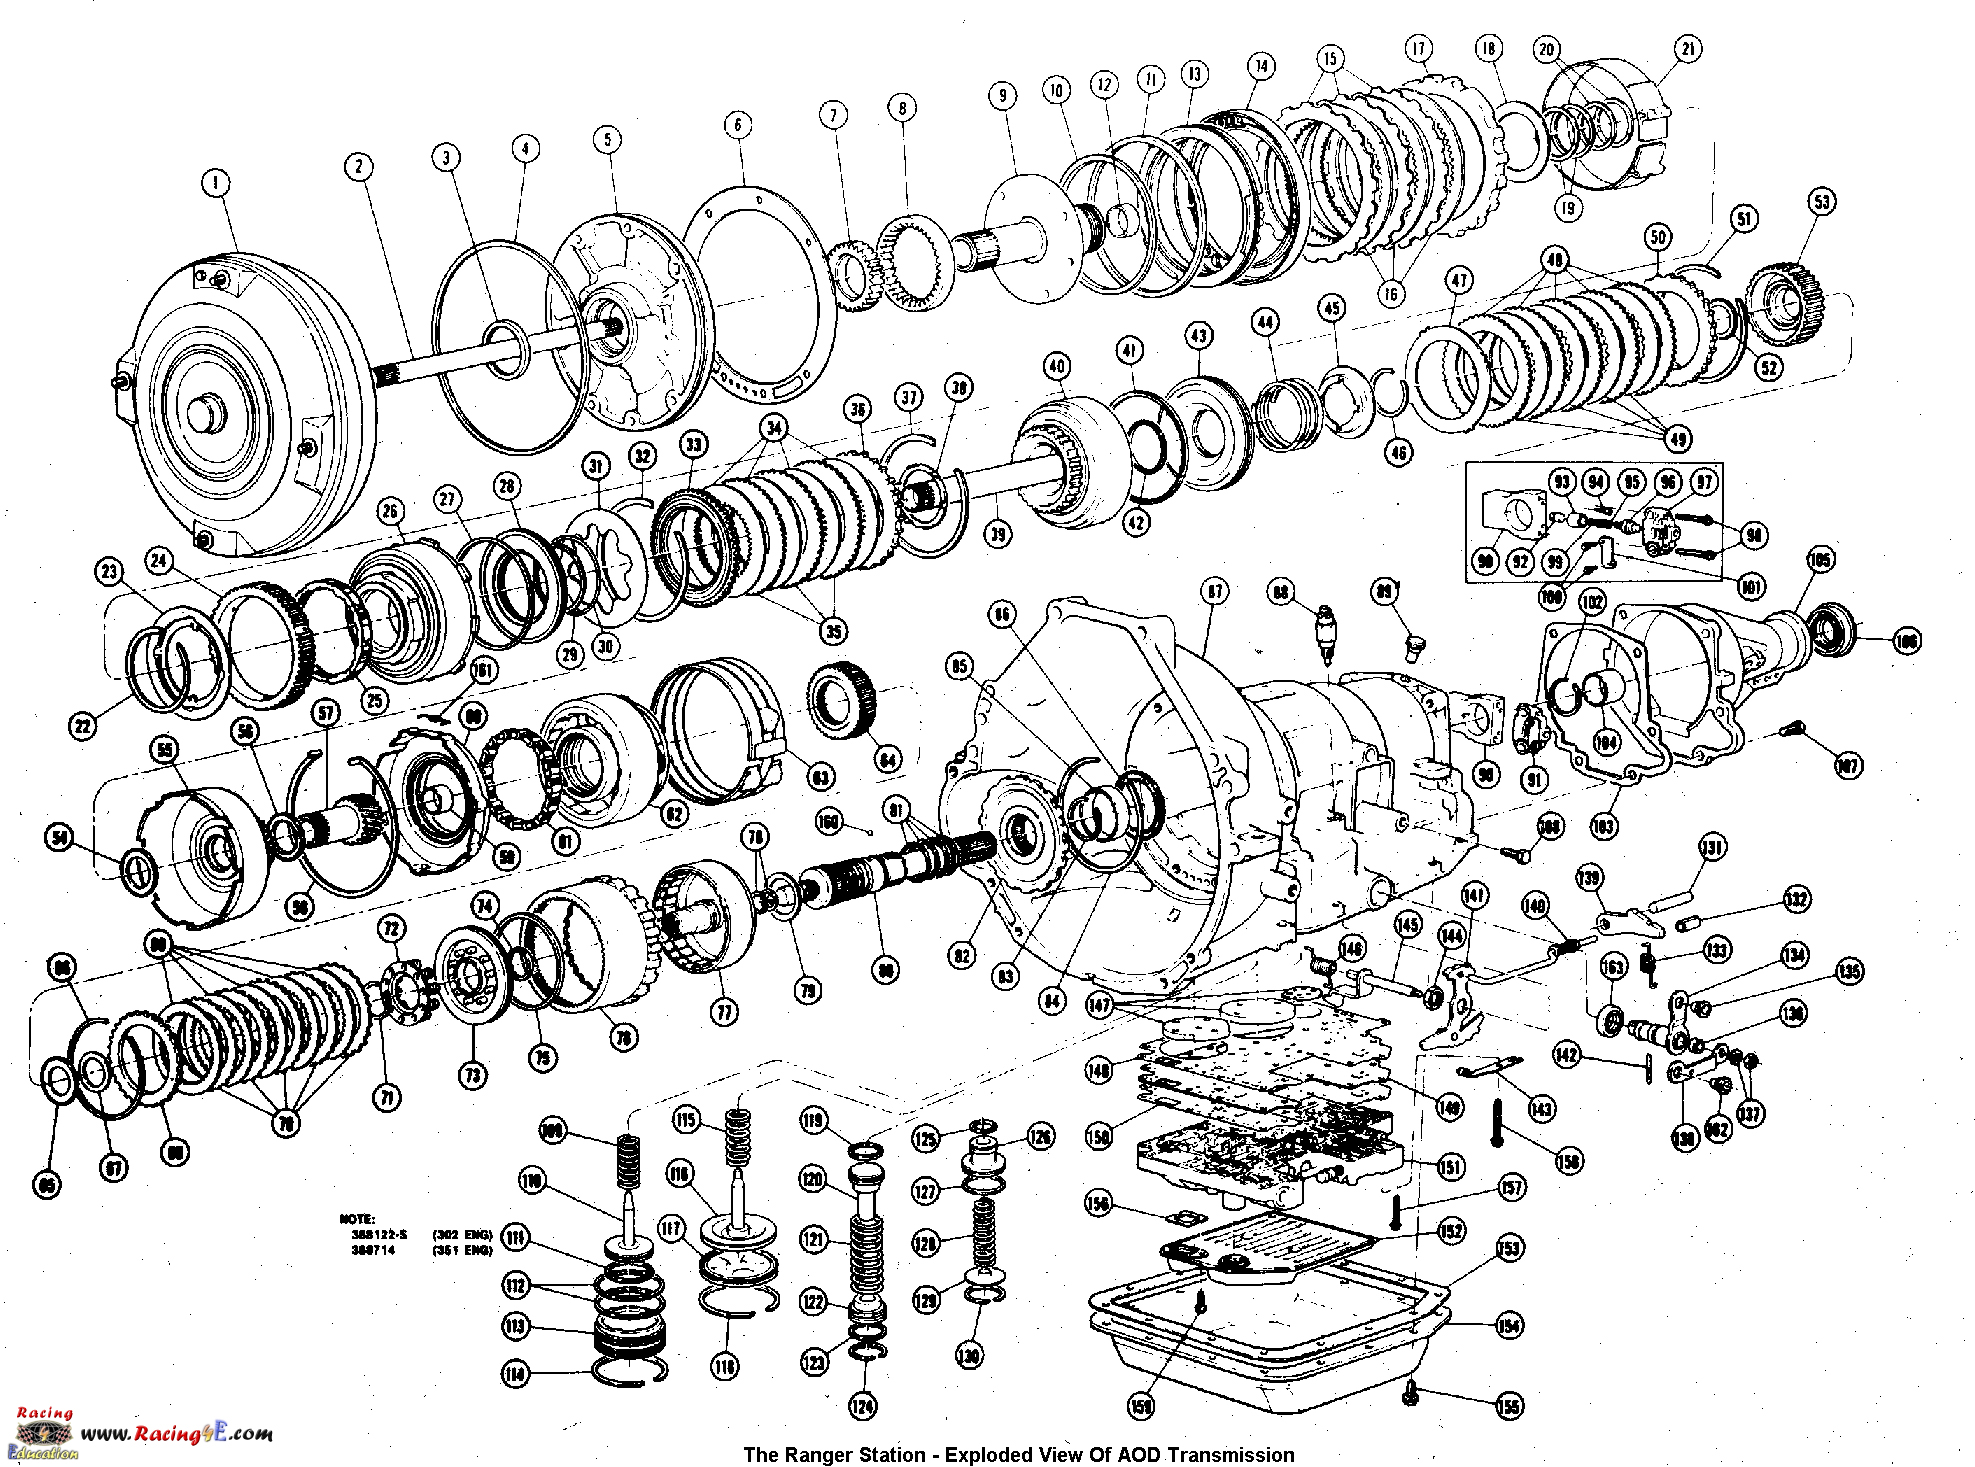 Ford Aod Transmission Diagrams Another Blog About Wiring Diagram Taurus Schematics Free 97 Ranger Motor Get Image